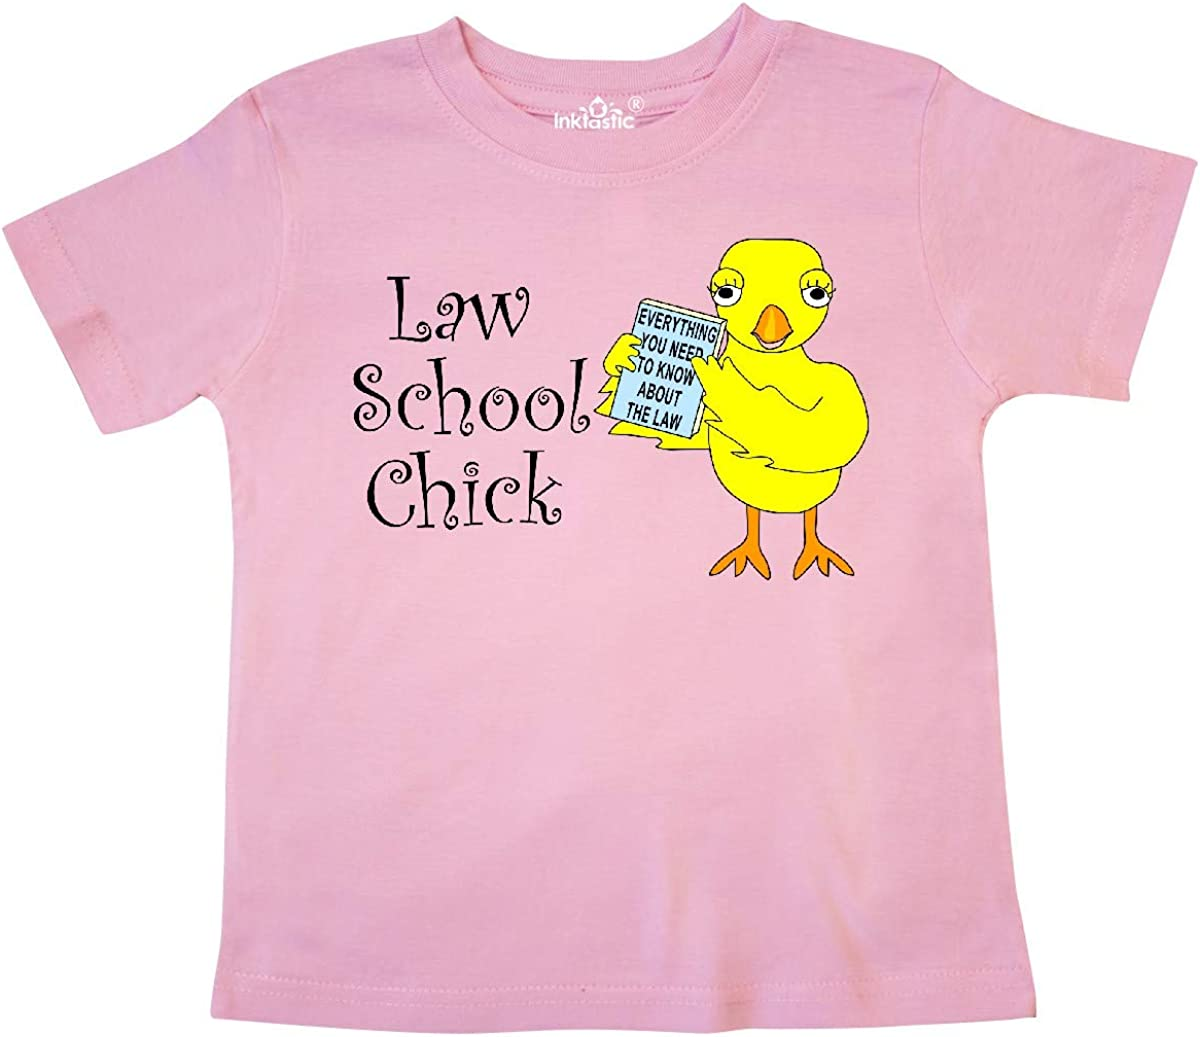 inktastic Law School Chick Toddler T-Shirt